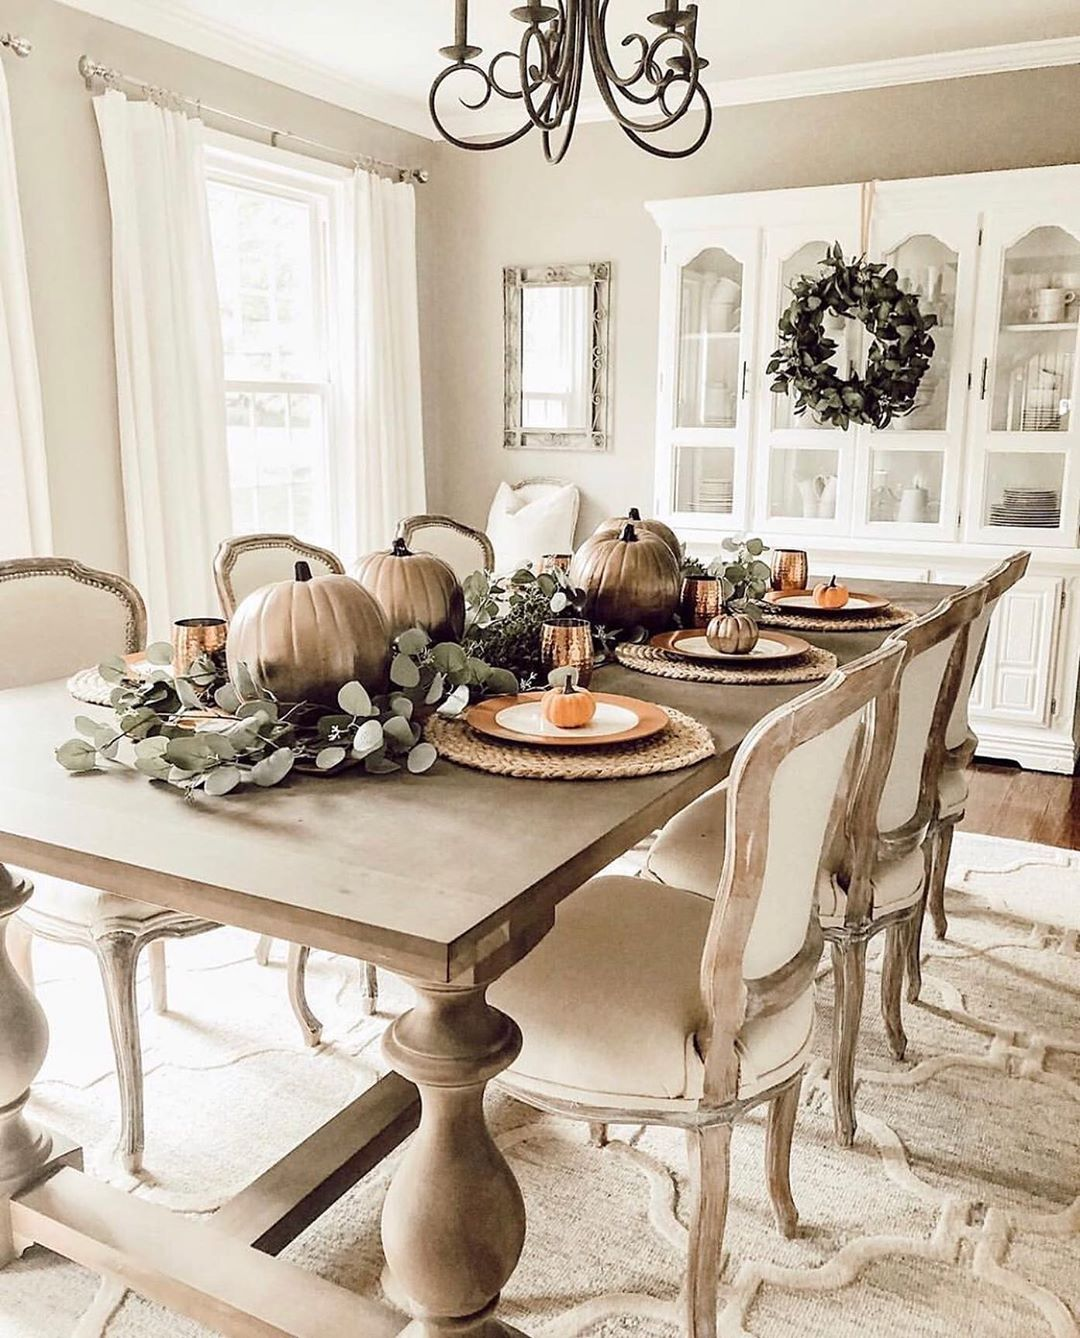 1570190898 271 funky fresh fall tablescapes from instagram - Funky Fresh Fall Tablescapes From Instagram